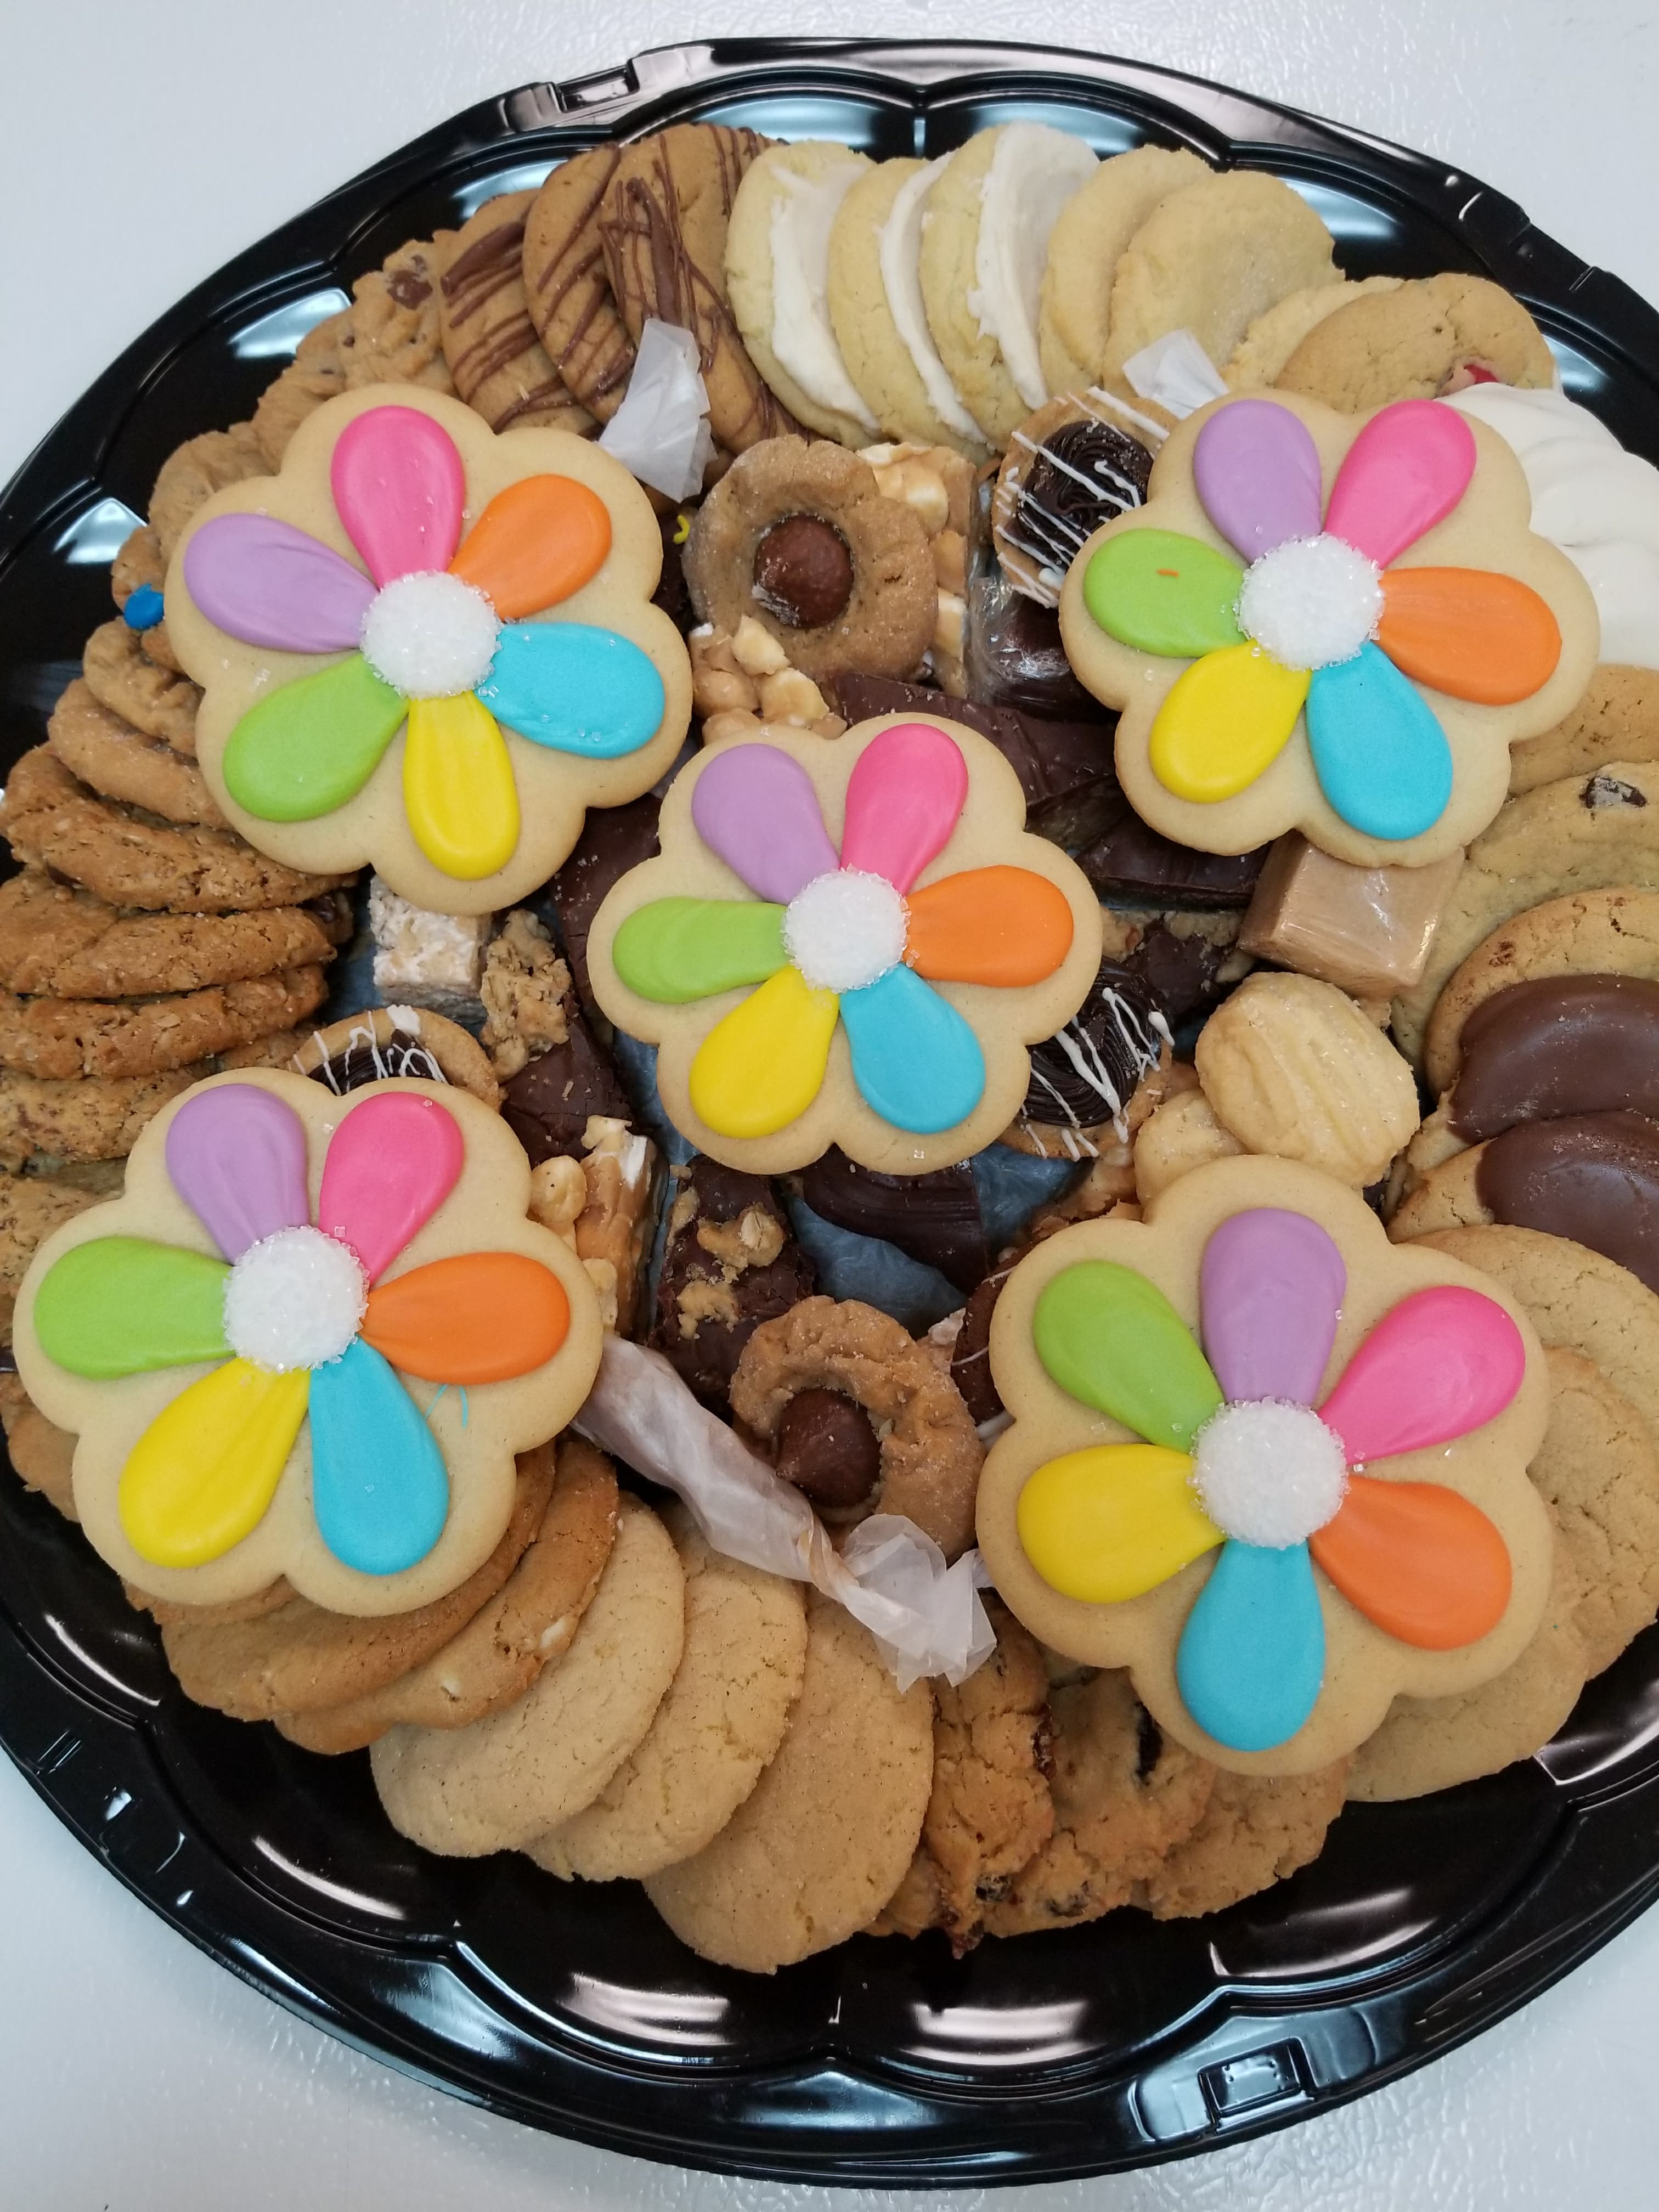 Spring Sweets tray